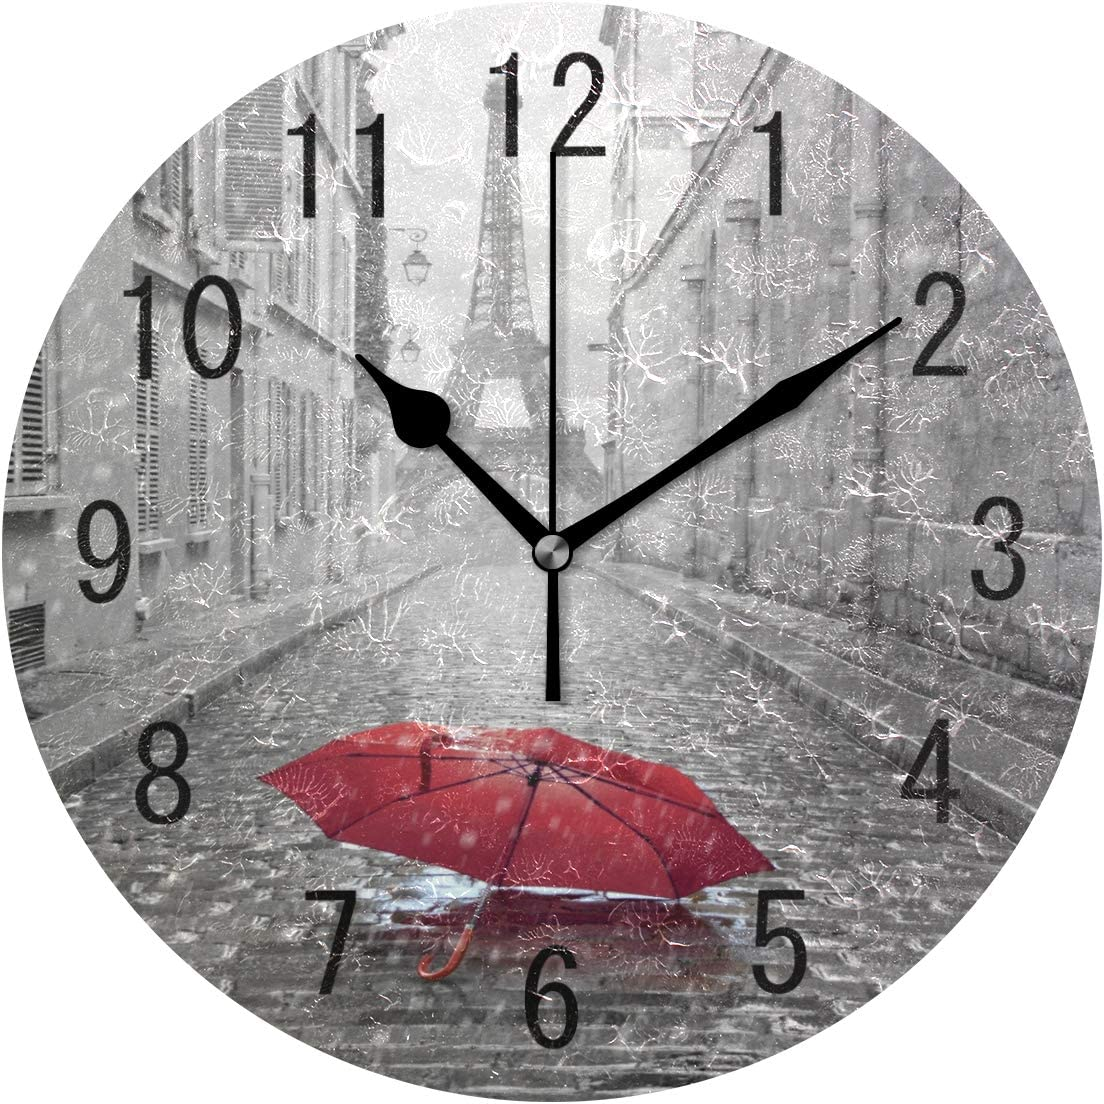 ALAZA Home Decor Eiffel Tower Street of Paris with Red Umbrella 9 inch Round Acrylic Wall Clock Non Ticking Silent Clock Art for Living Room Kitchen Bedroom